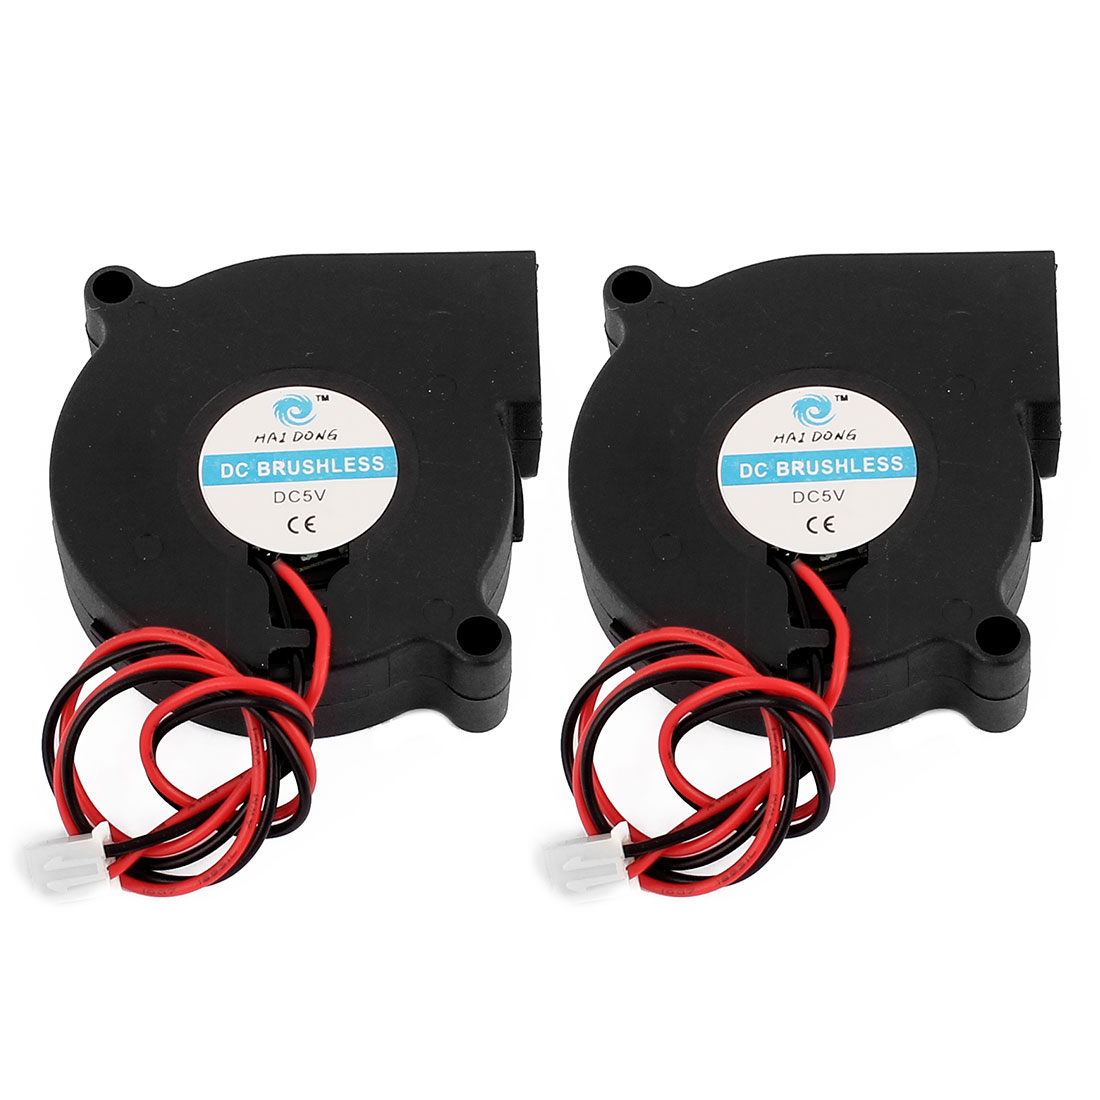 50 x 50 x 15mm 2pole DC 5V Brushless Cooling Fan 2Pcs for PC Case Computer CPU